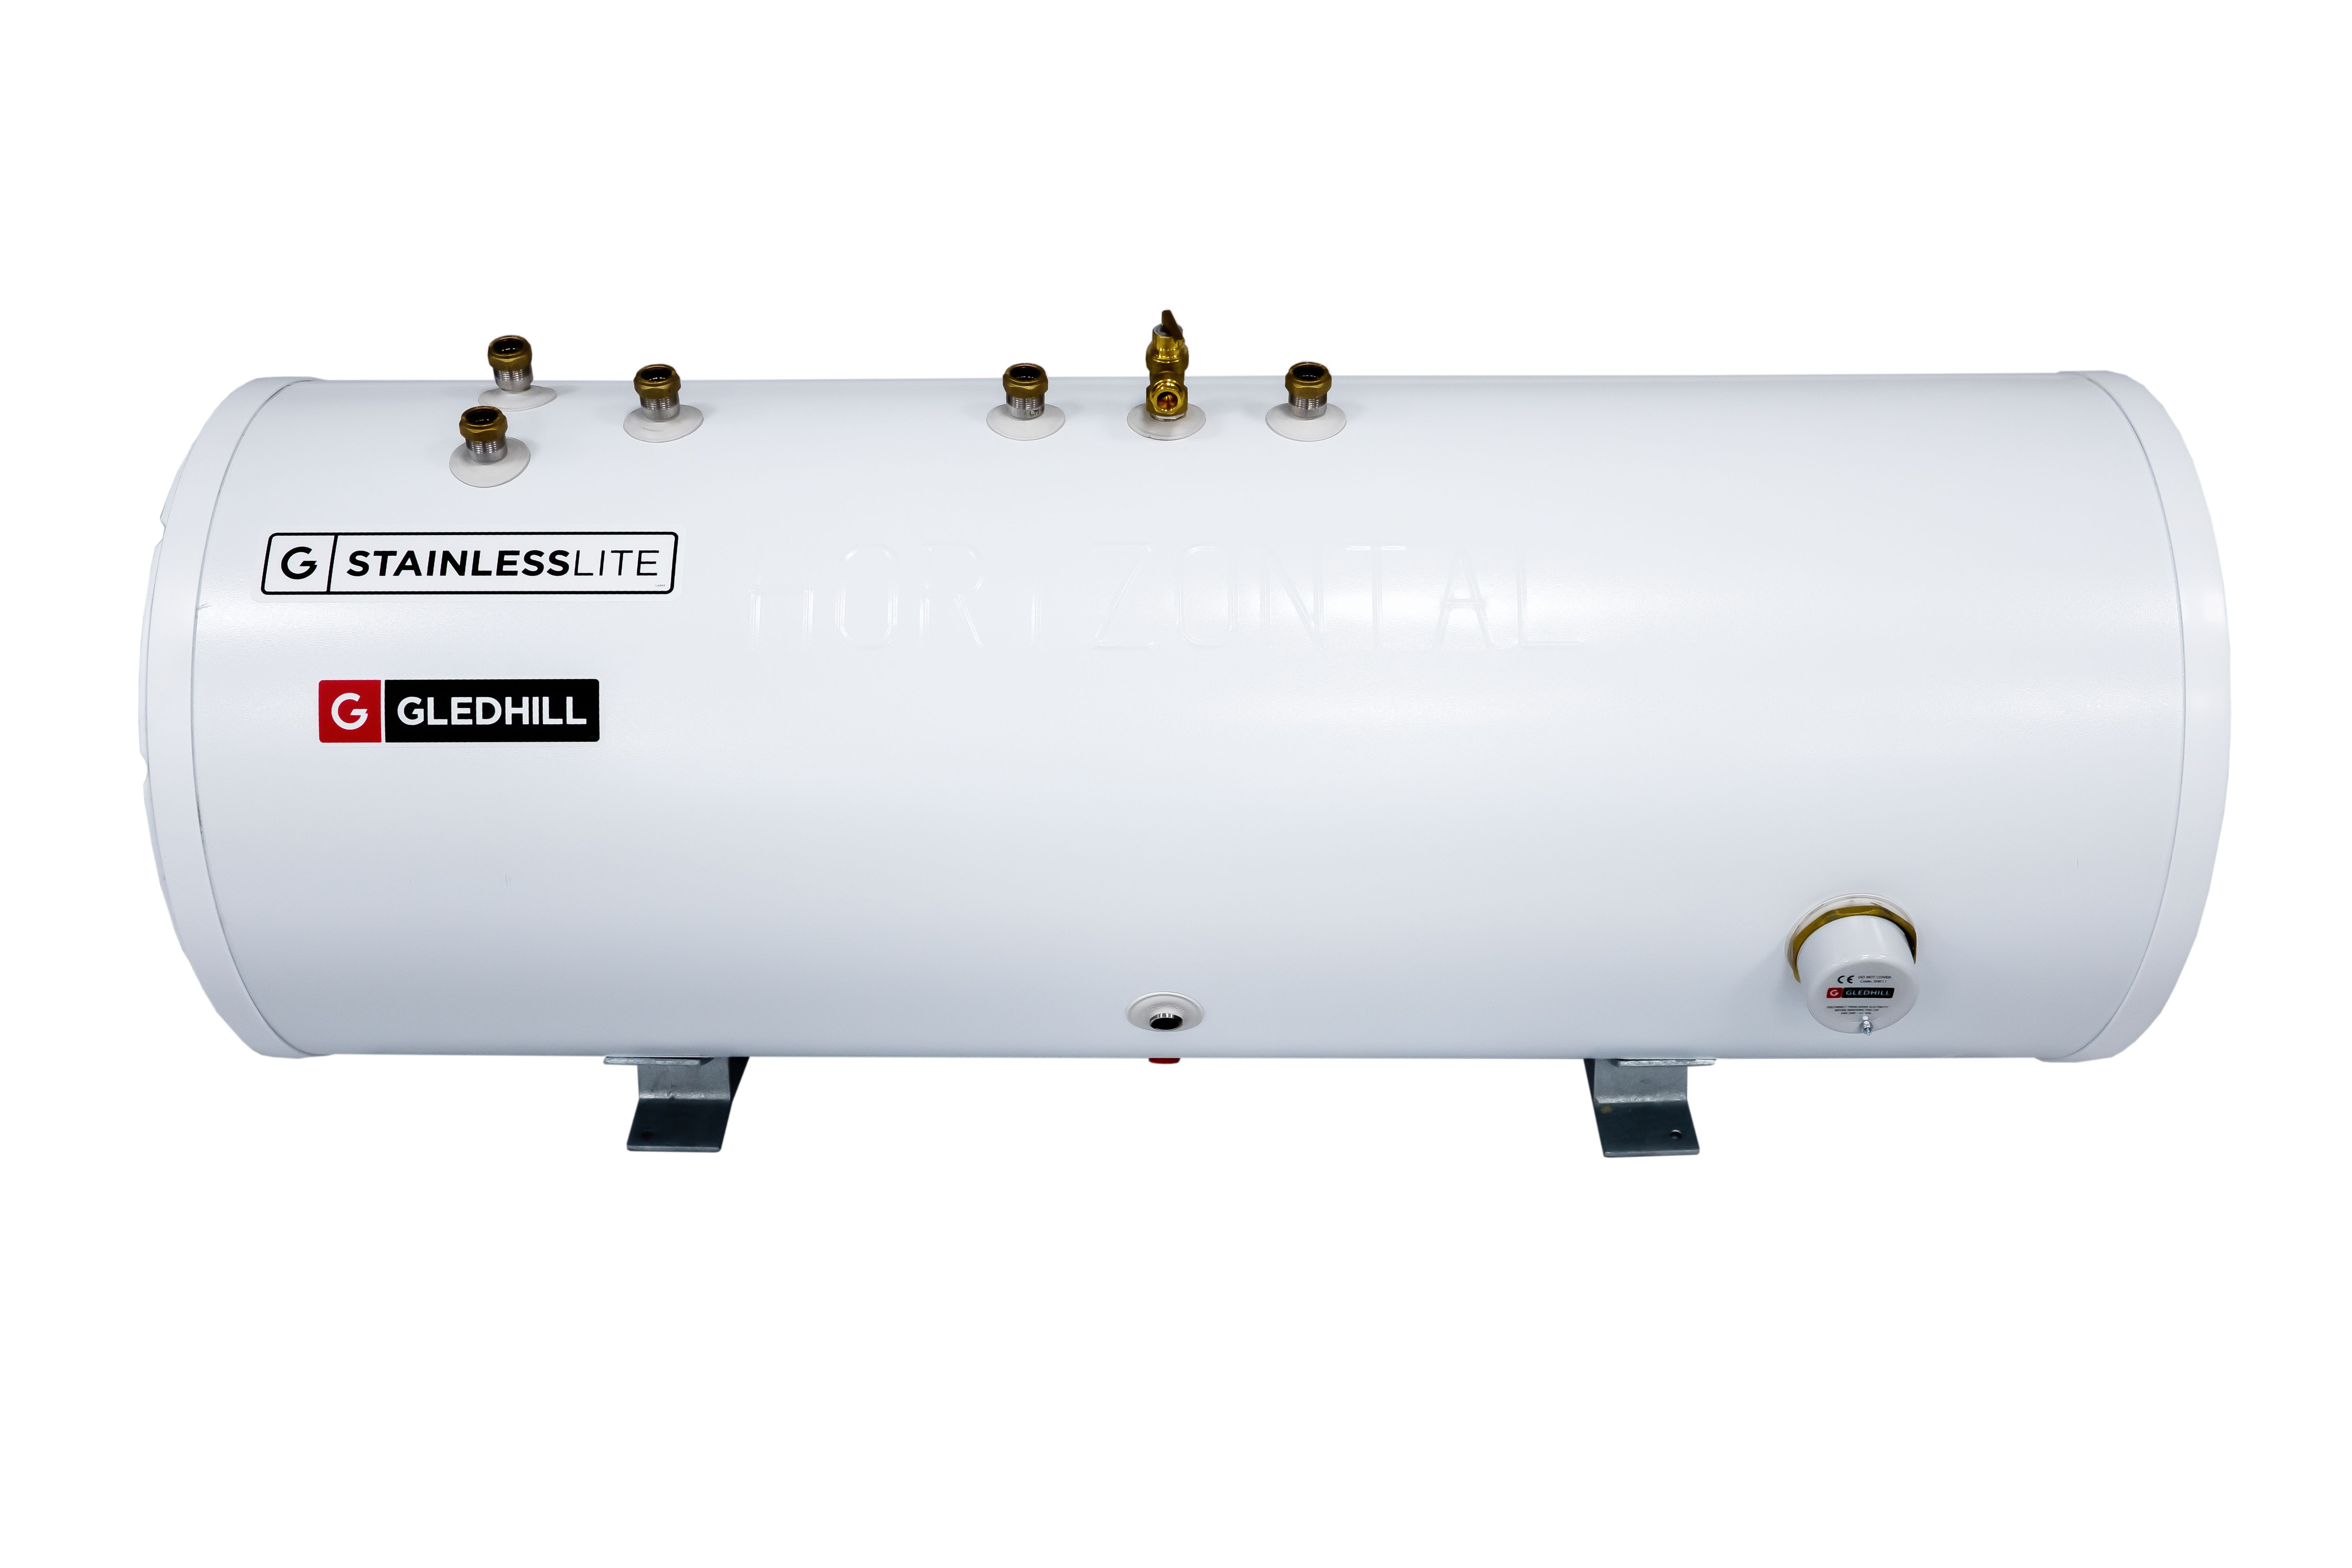 Gledhill Stainlesslite Plus 180L Indirect Horizontal Cylinder City